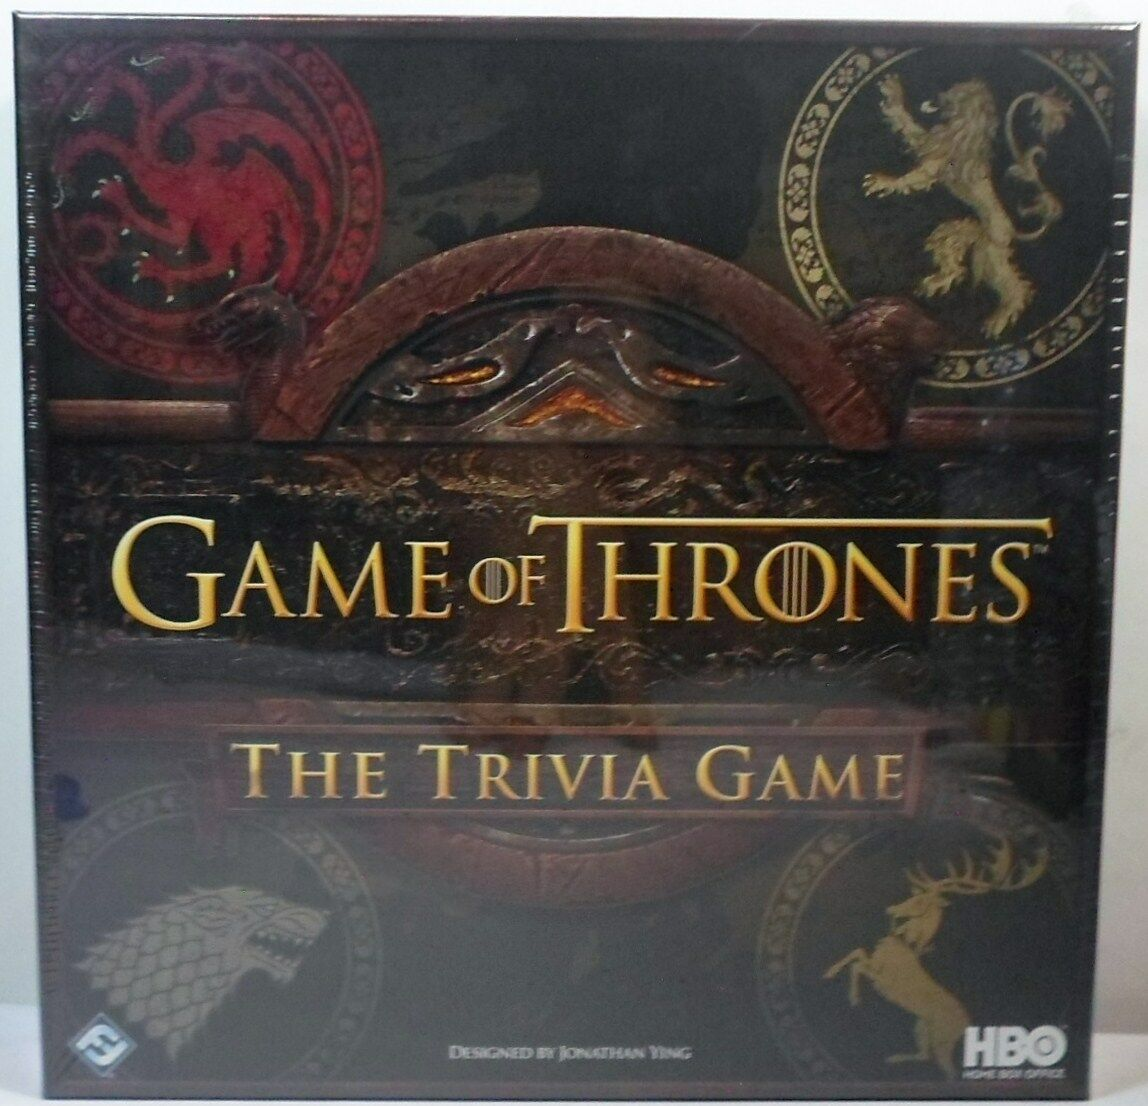 FANTASY FLIGHT 2015 HBO GAME OF THRONES THE TRIVIA GAME - BOARD GAME SEALED